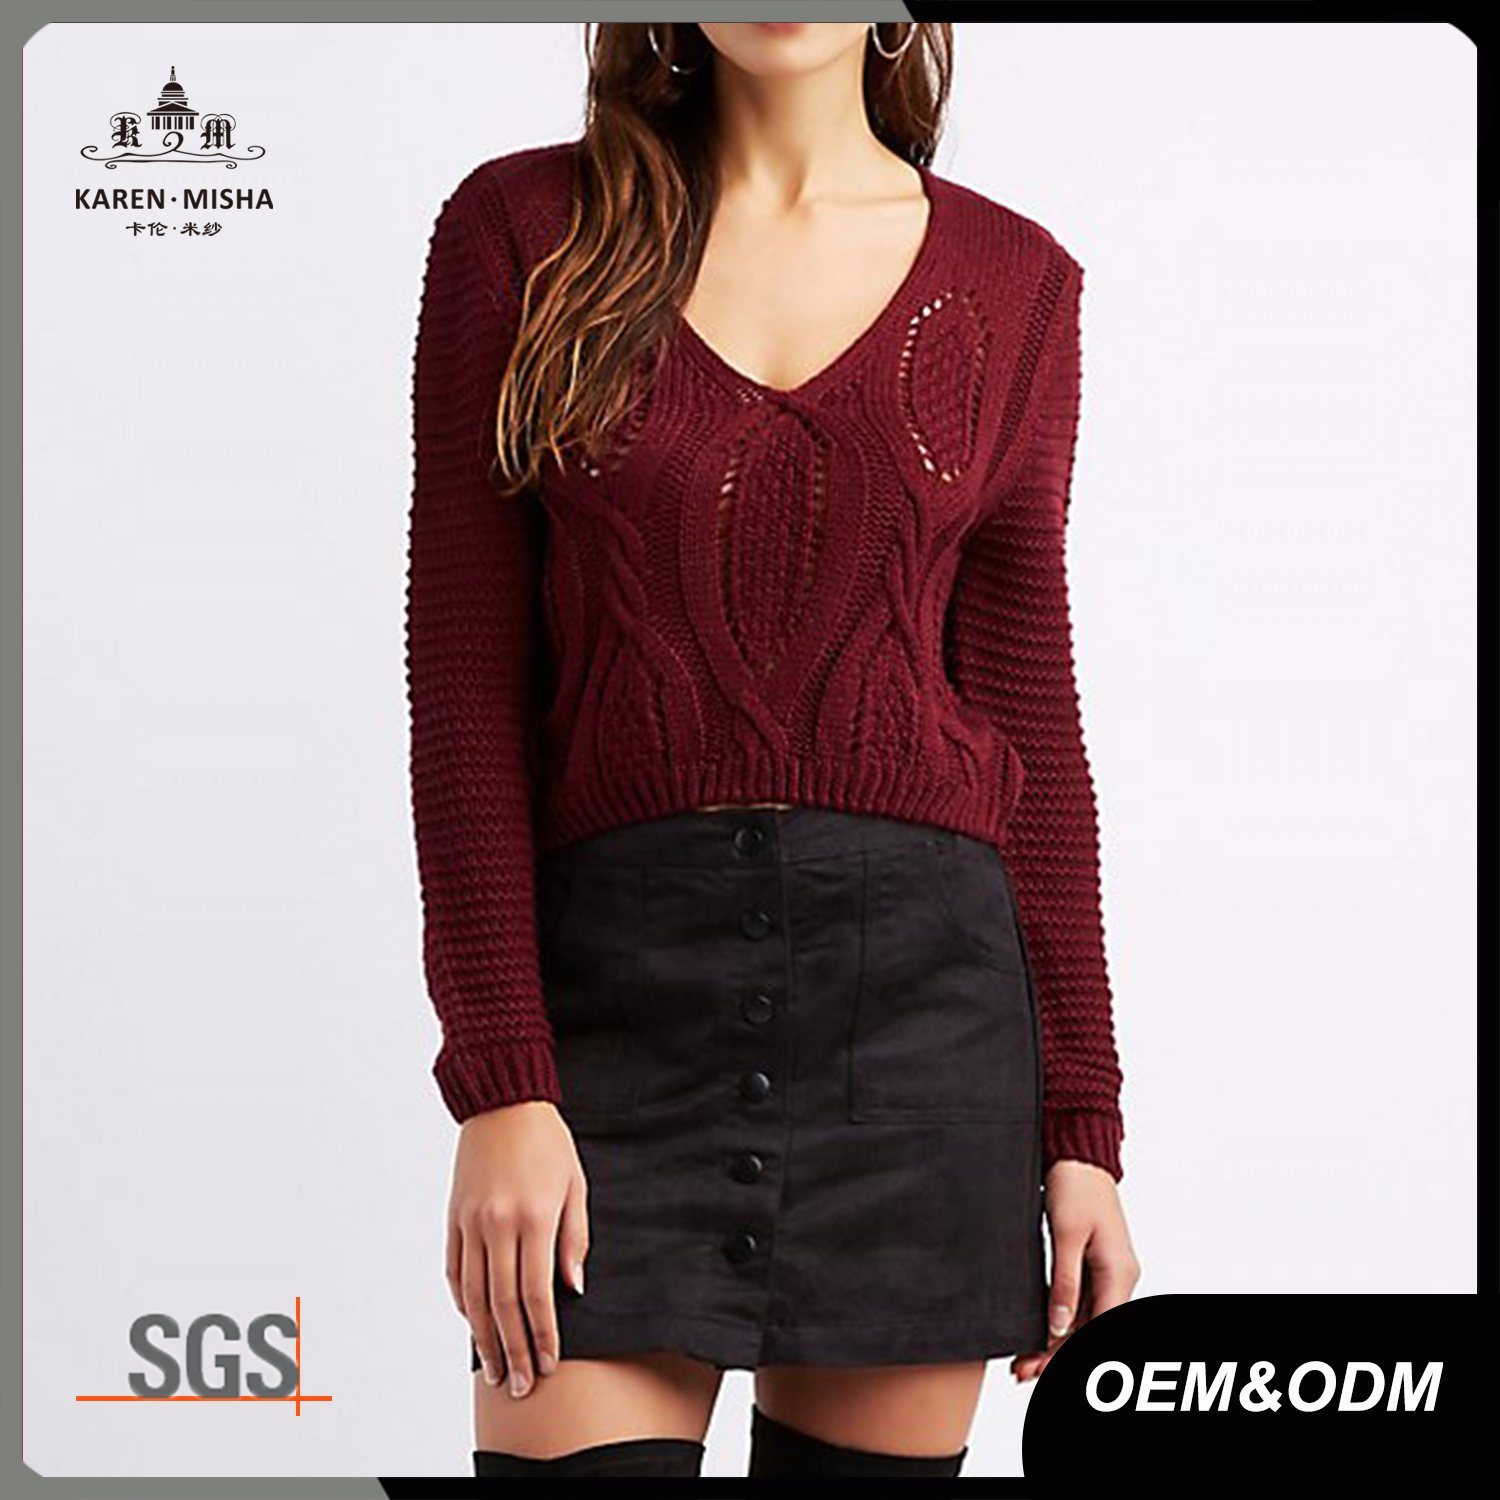 Ribbed Ladies Acrylic V Neck Cable Knit Jumper